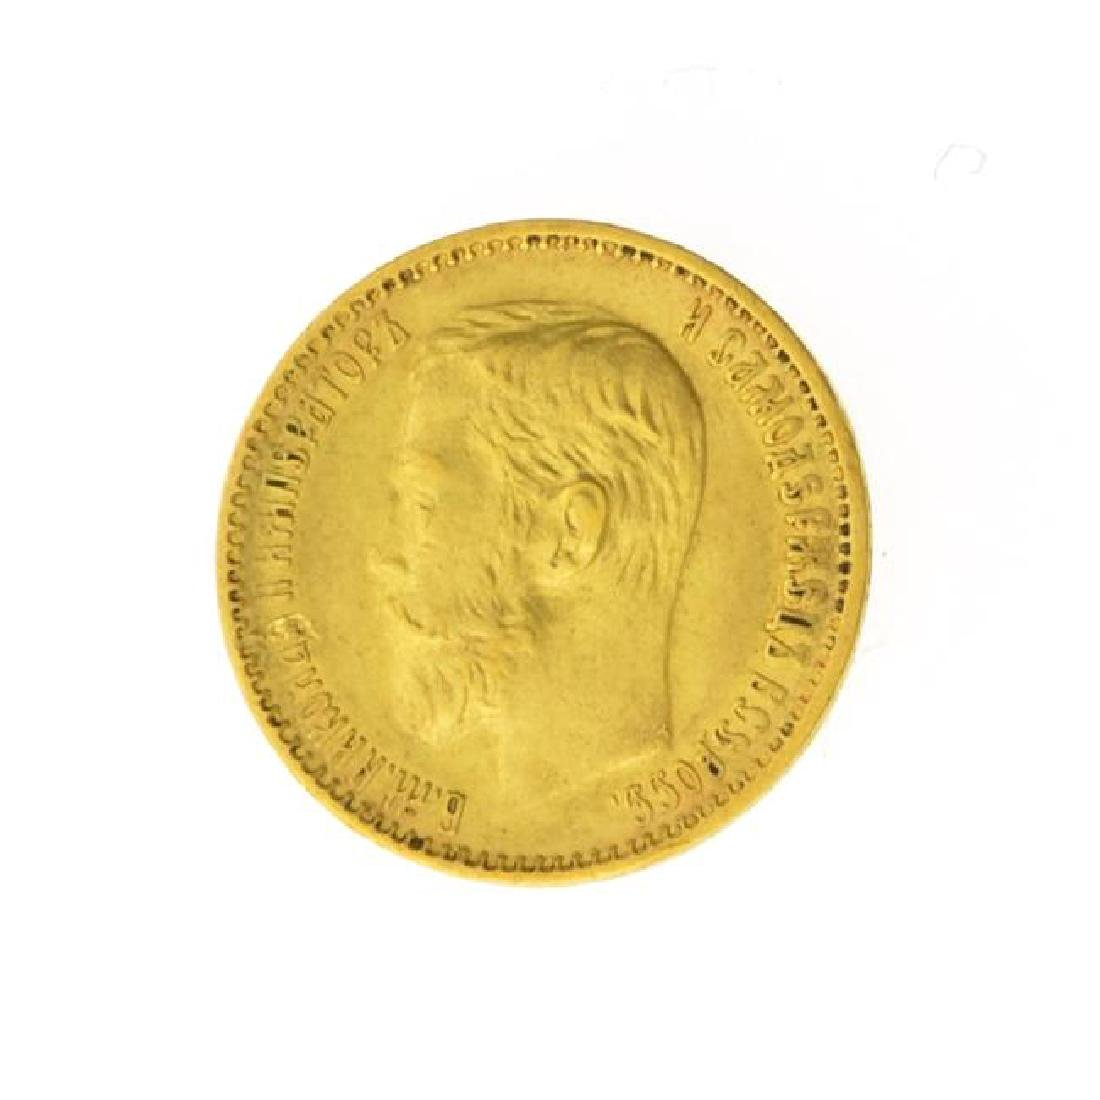 1898 Russia 5 Roubles Gold Coin (JG)